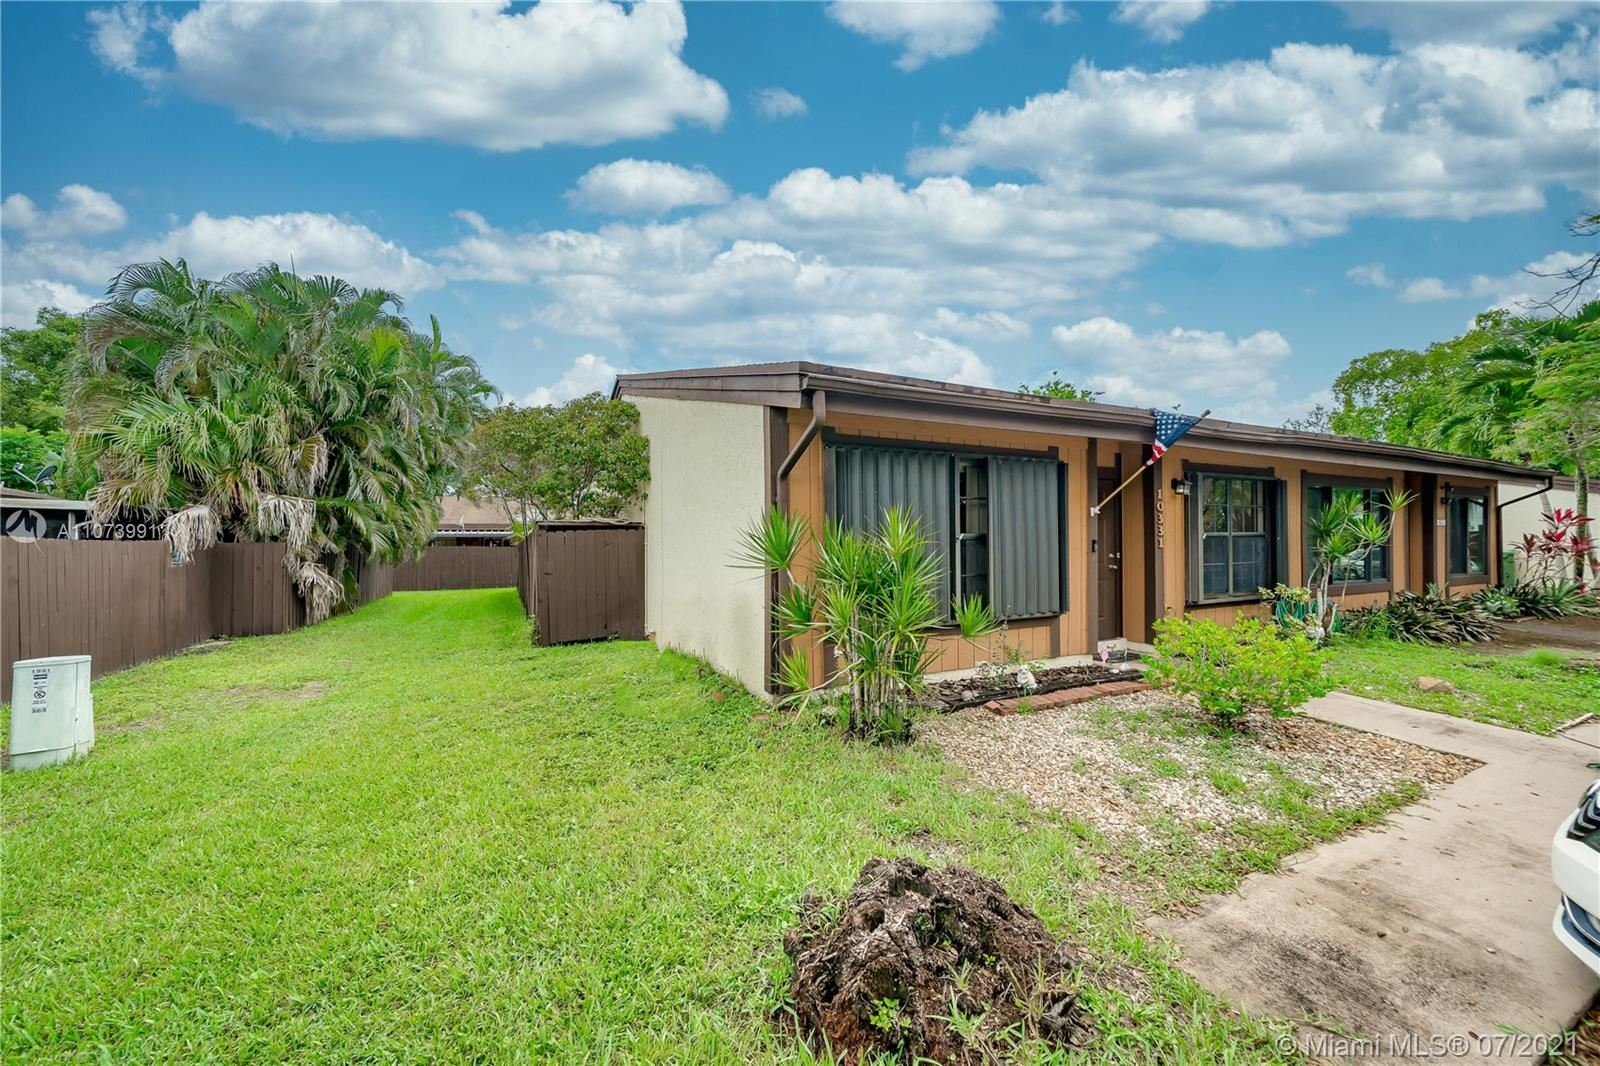 Photo of 10331 Holly Ct, Pembroke Pines, FL 33026 (MLS # A11073991)